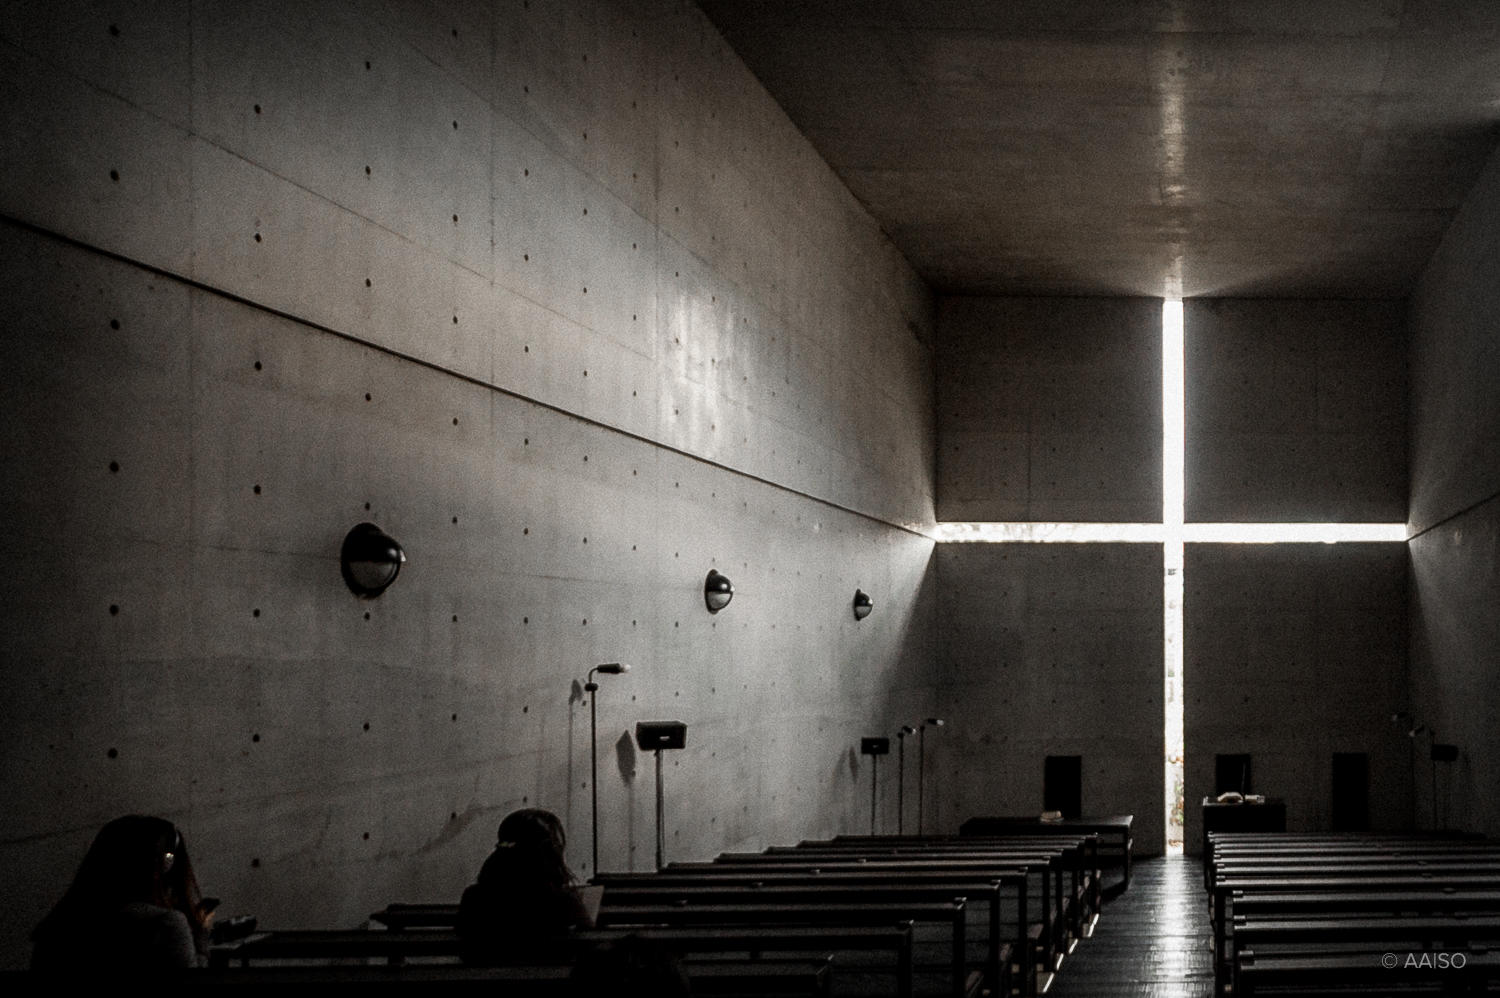 Interior View, Church of the Light, Osaka, Tadao Ando